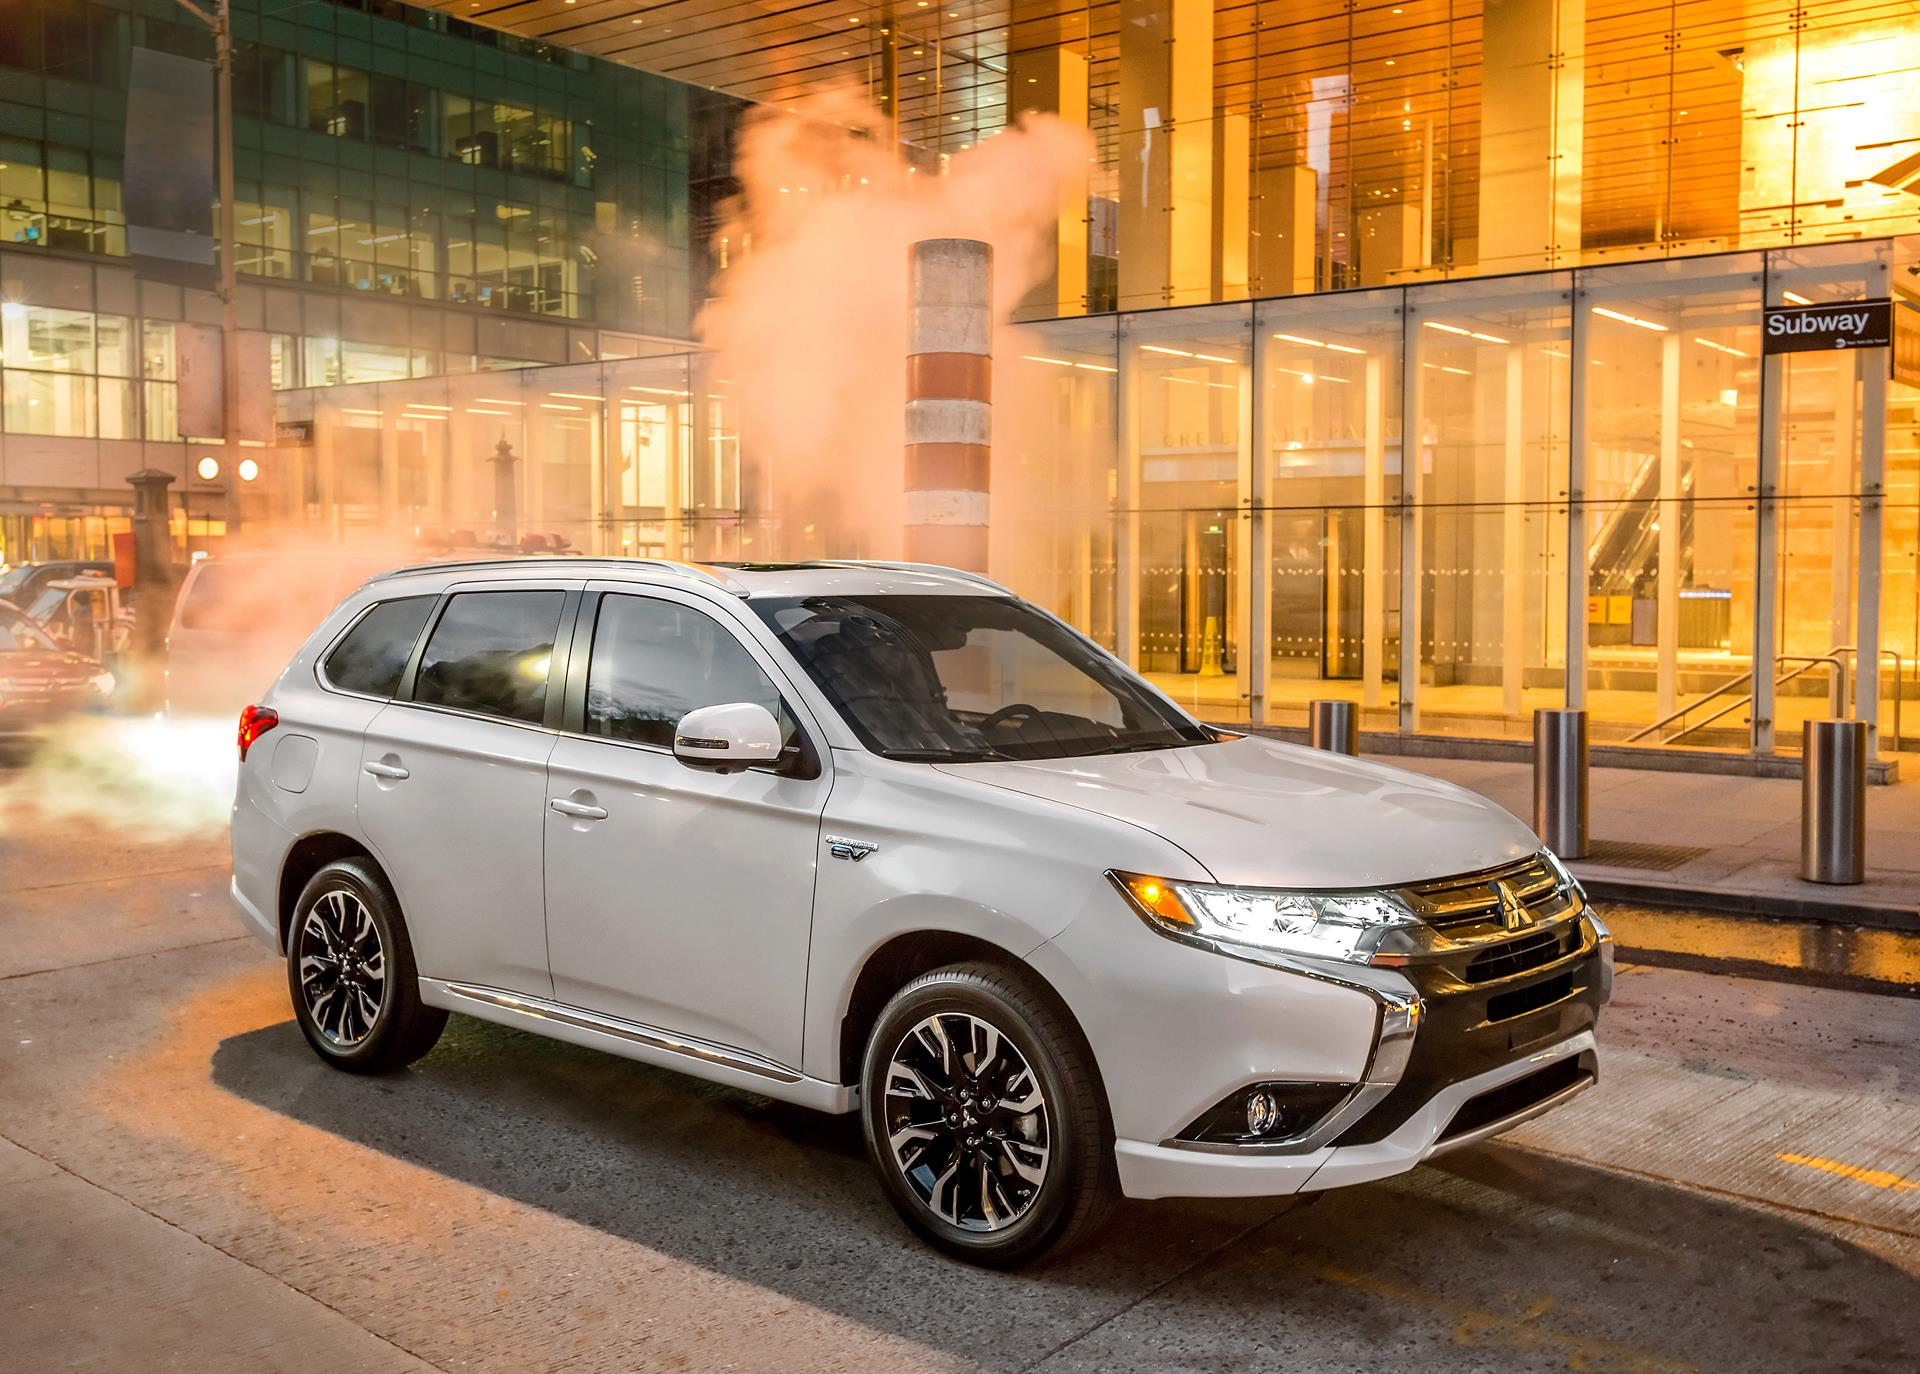 2017 mitsubishi outlander phev technical specifications and data engine dimensions and. Black Bedroom Furniture Sets. Home Design Ideas